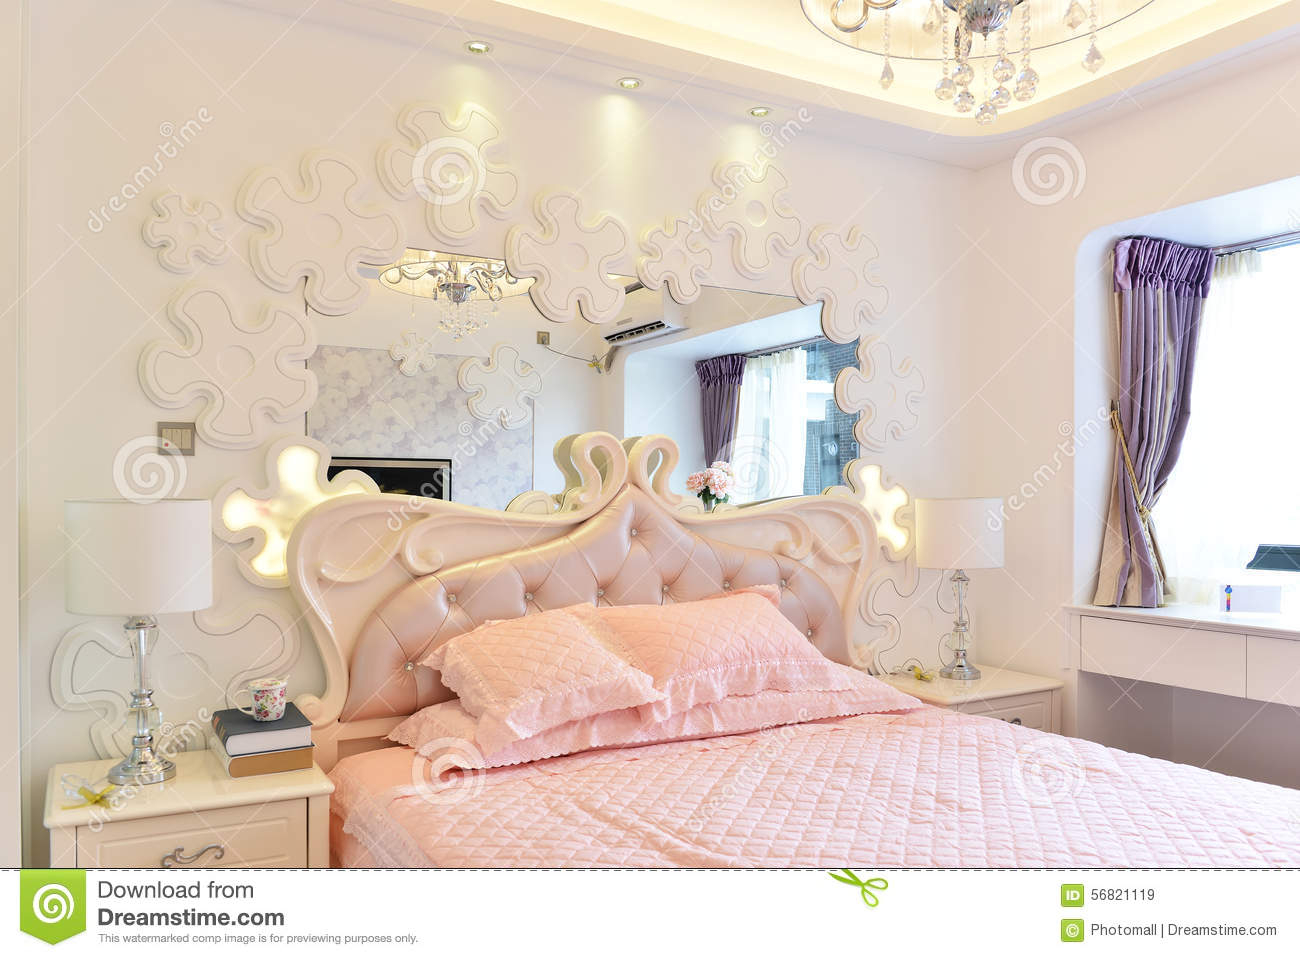 Pink bedroom stock image. Image of gold, bedroom, home - 56821119